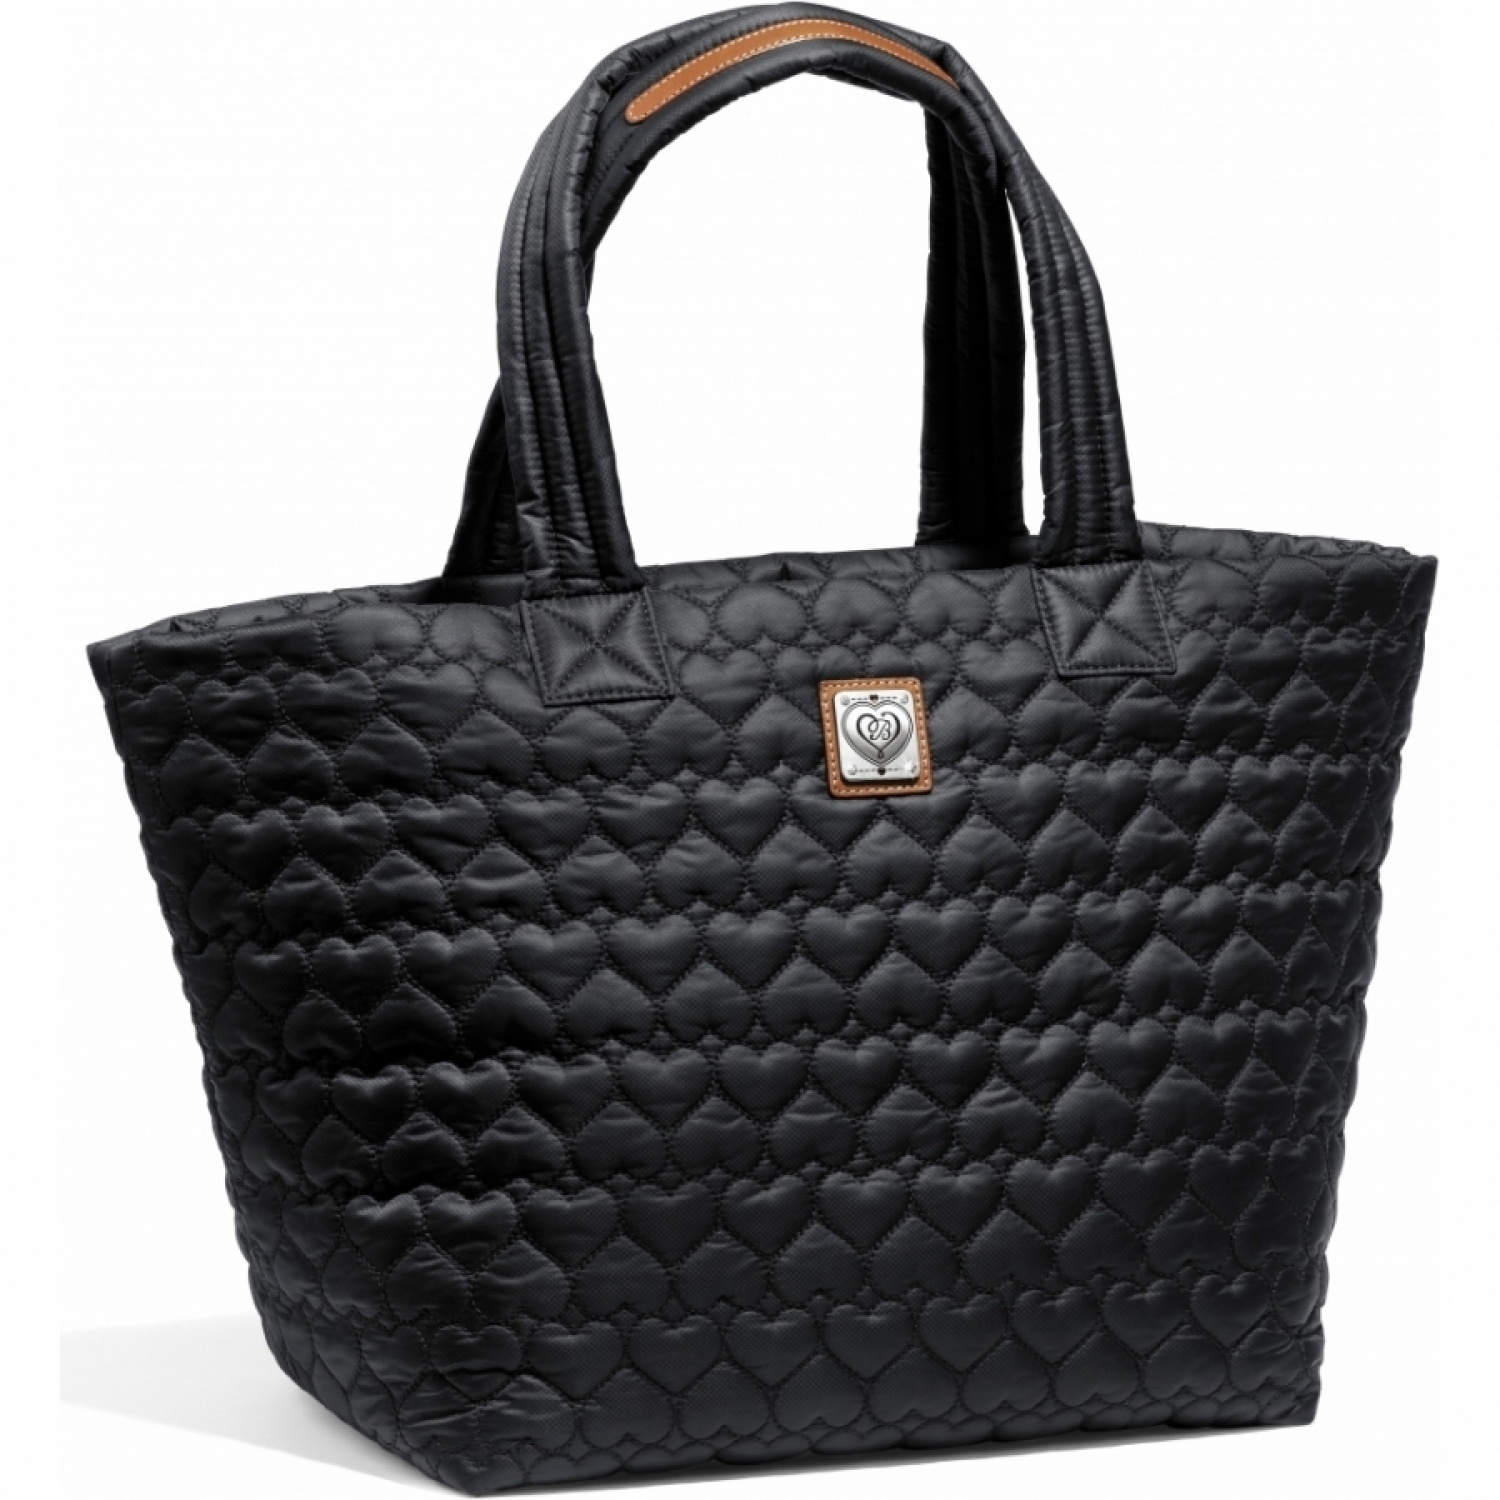 knox extra large tote - Travel Tote Bags